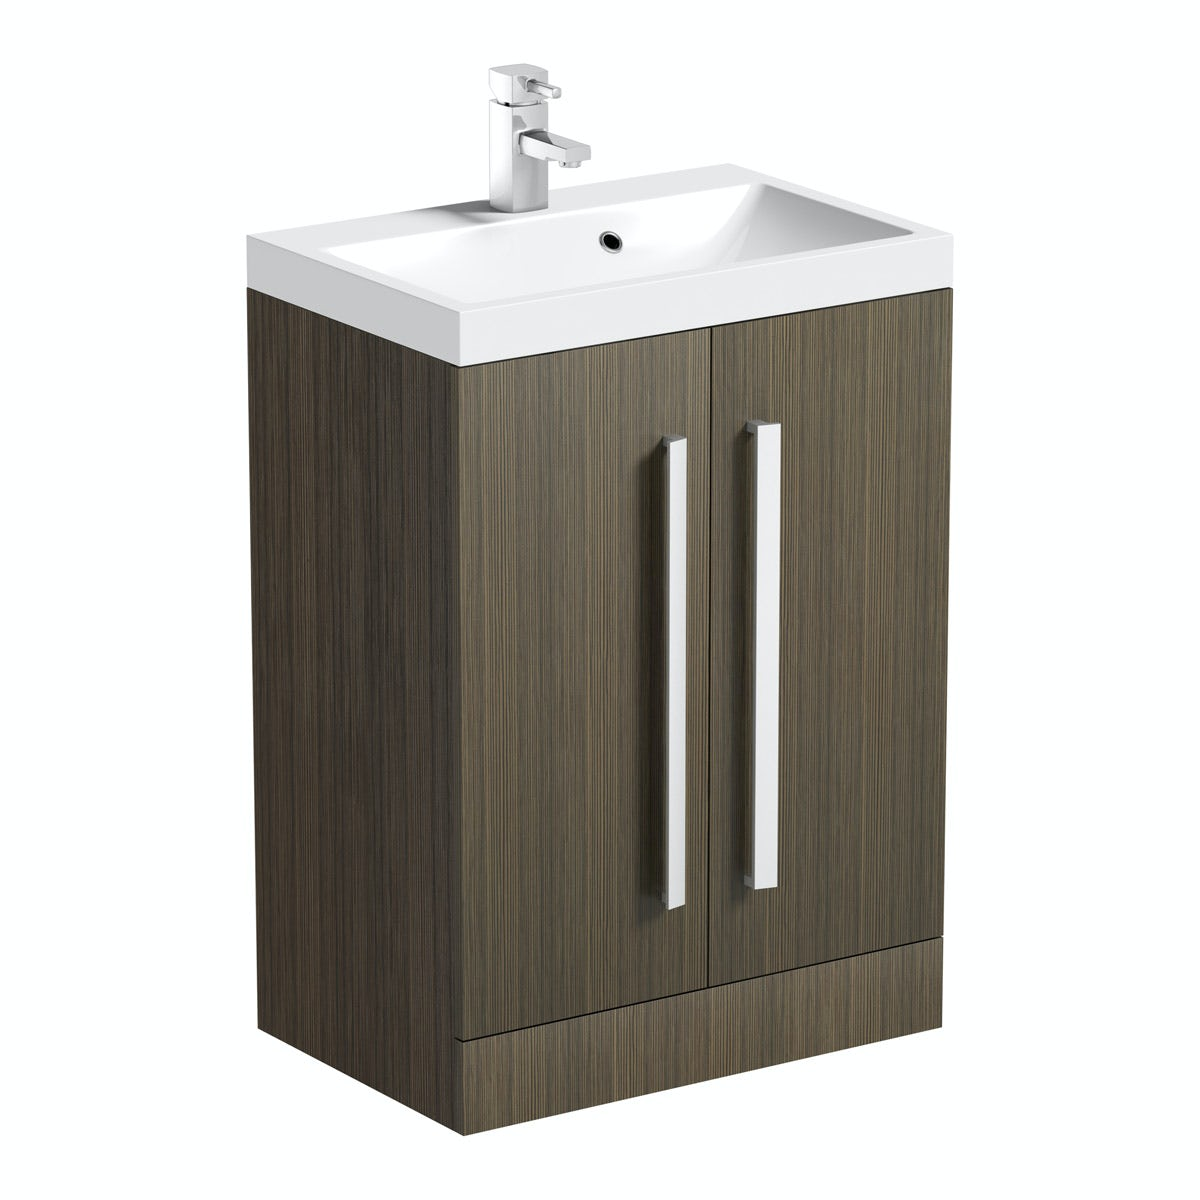 Orchard Wye walnut vanity unit with basin 600mm